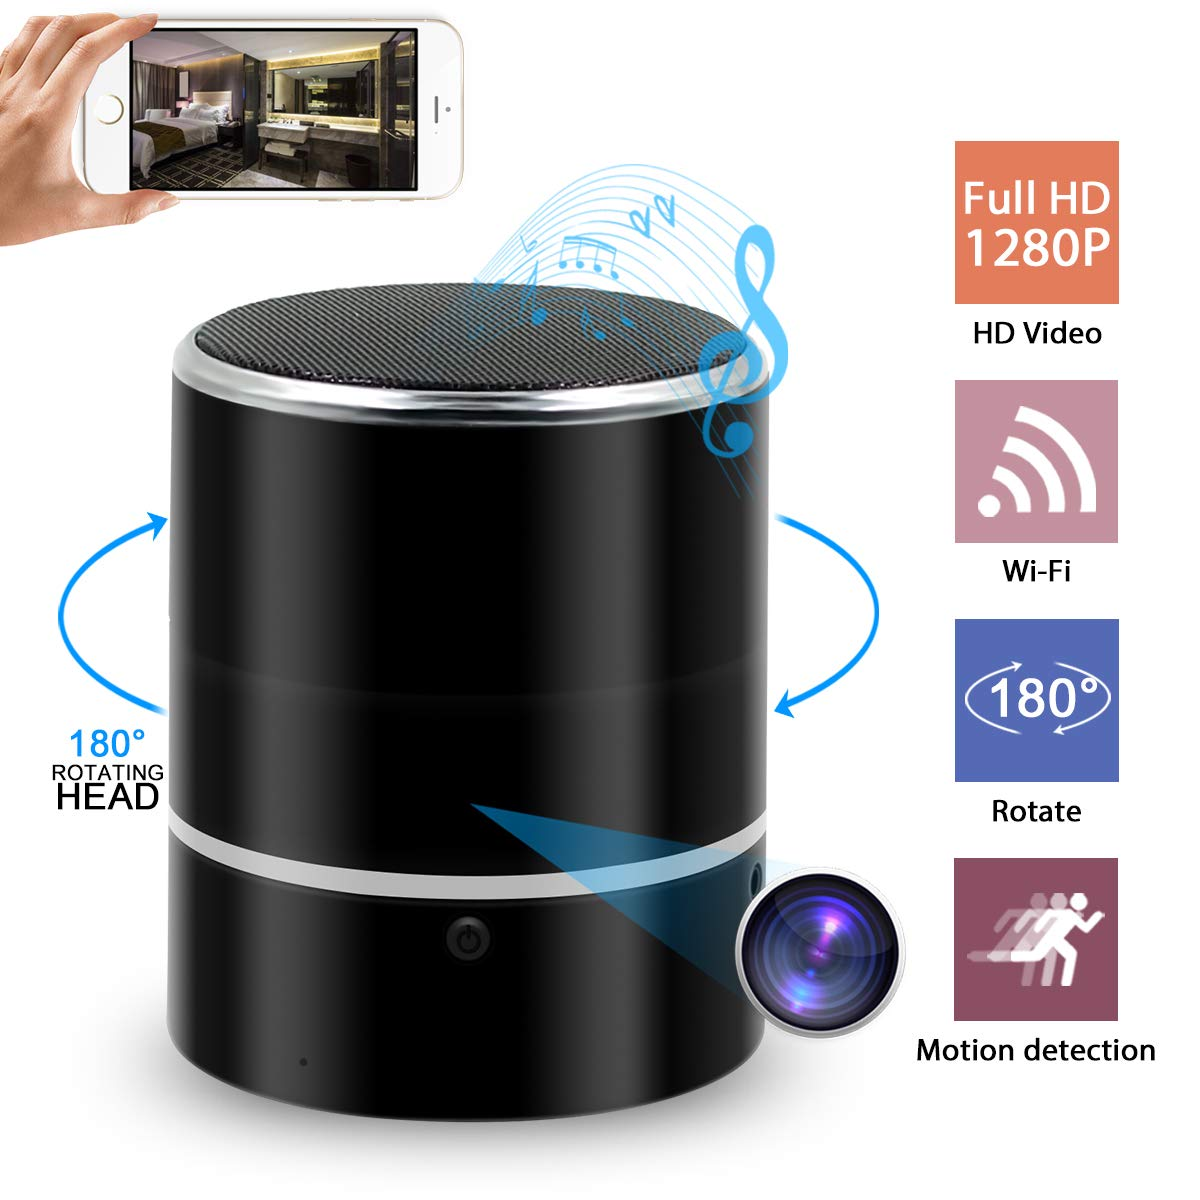 Hidden Camera Spy Camera Bluetooth Speaker, WiFi HD 1080P DVR Rotate 180°Lens Remote View Music Player Security Camera Night Vision Motion Detection for Home Office by NANIBO